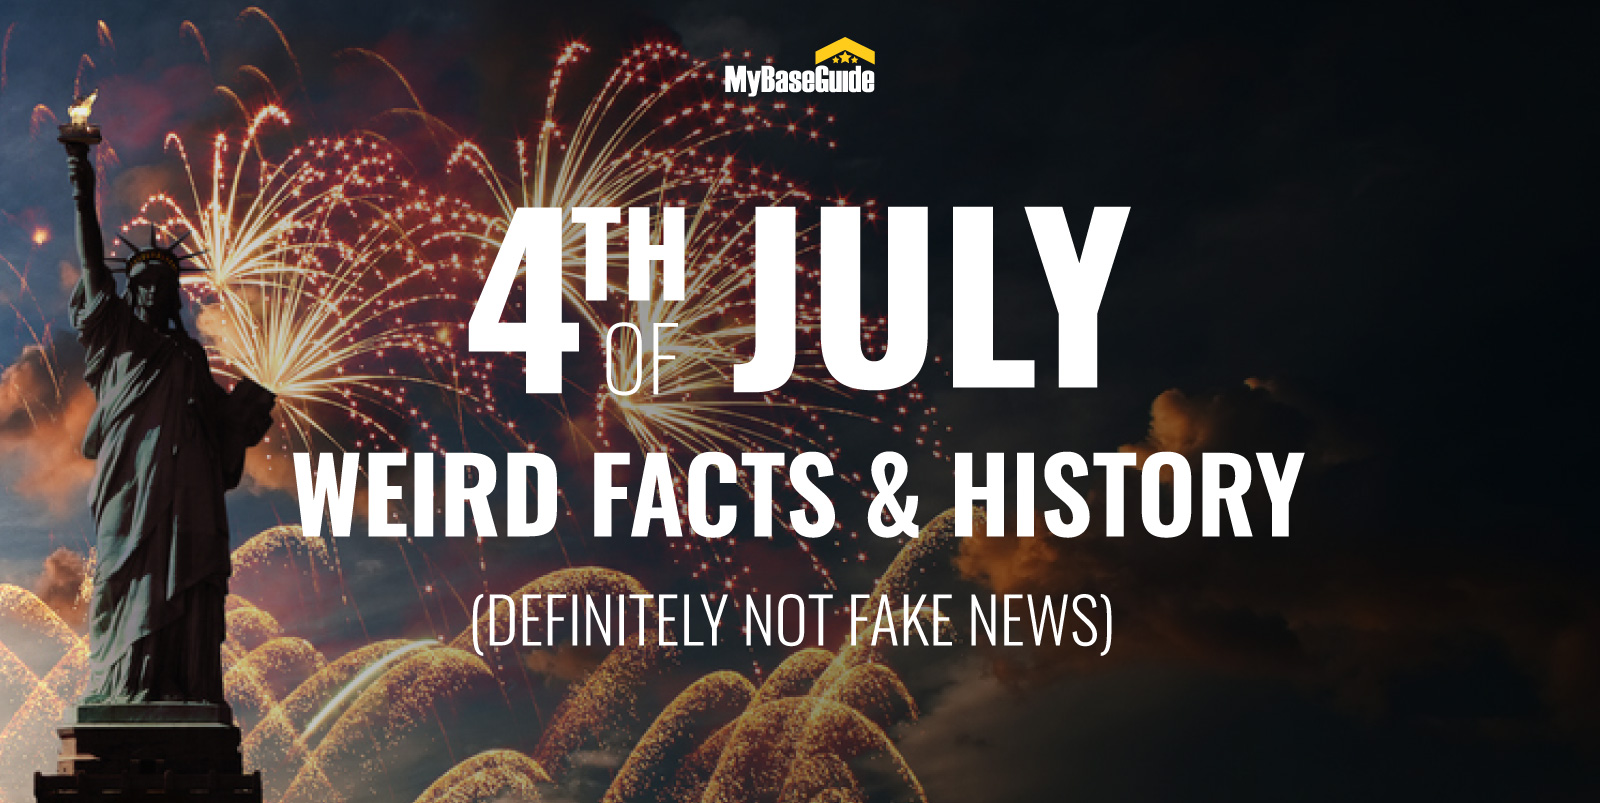 39 4th of July Facts and History That Are So Weird But Definitely Not Fake News